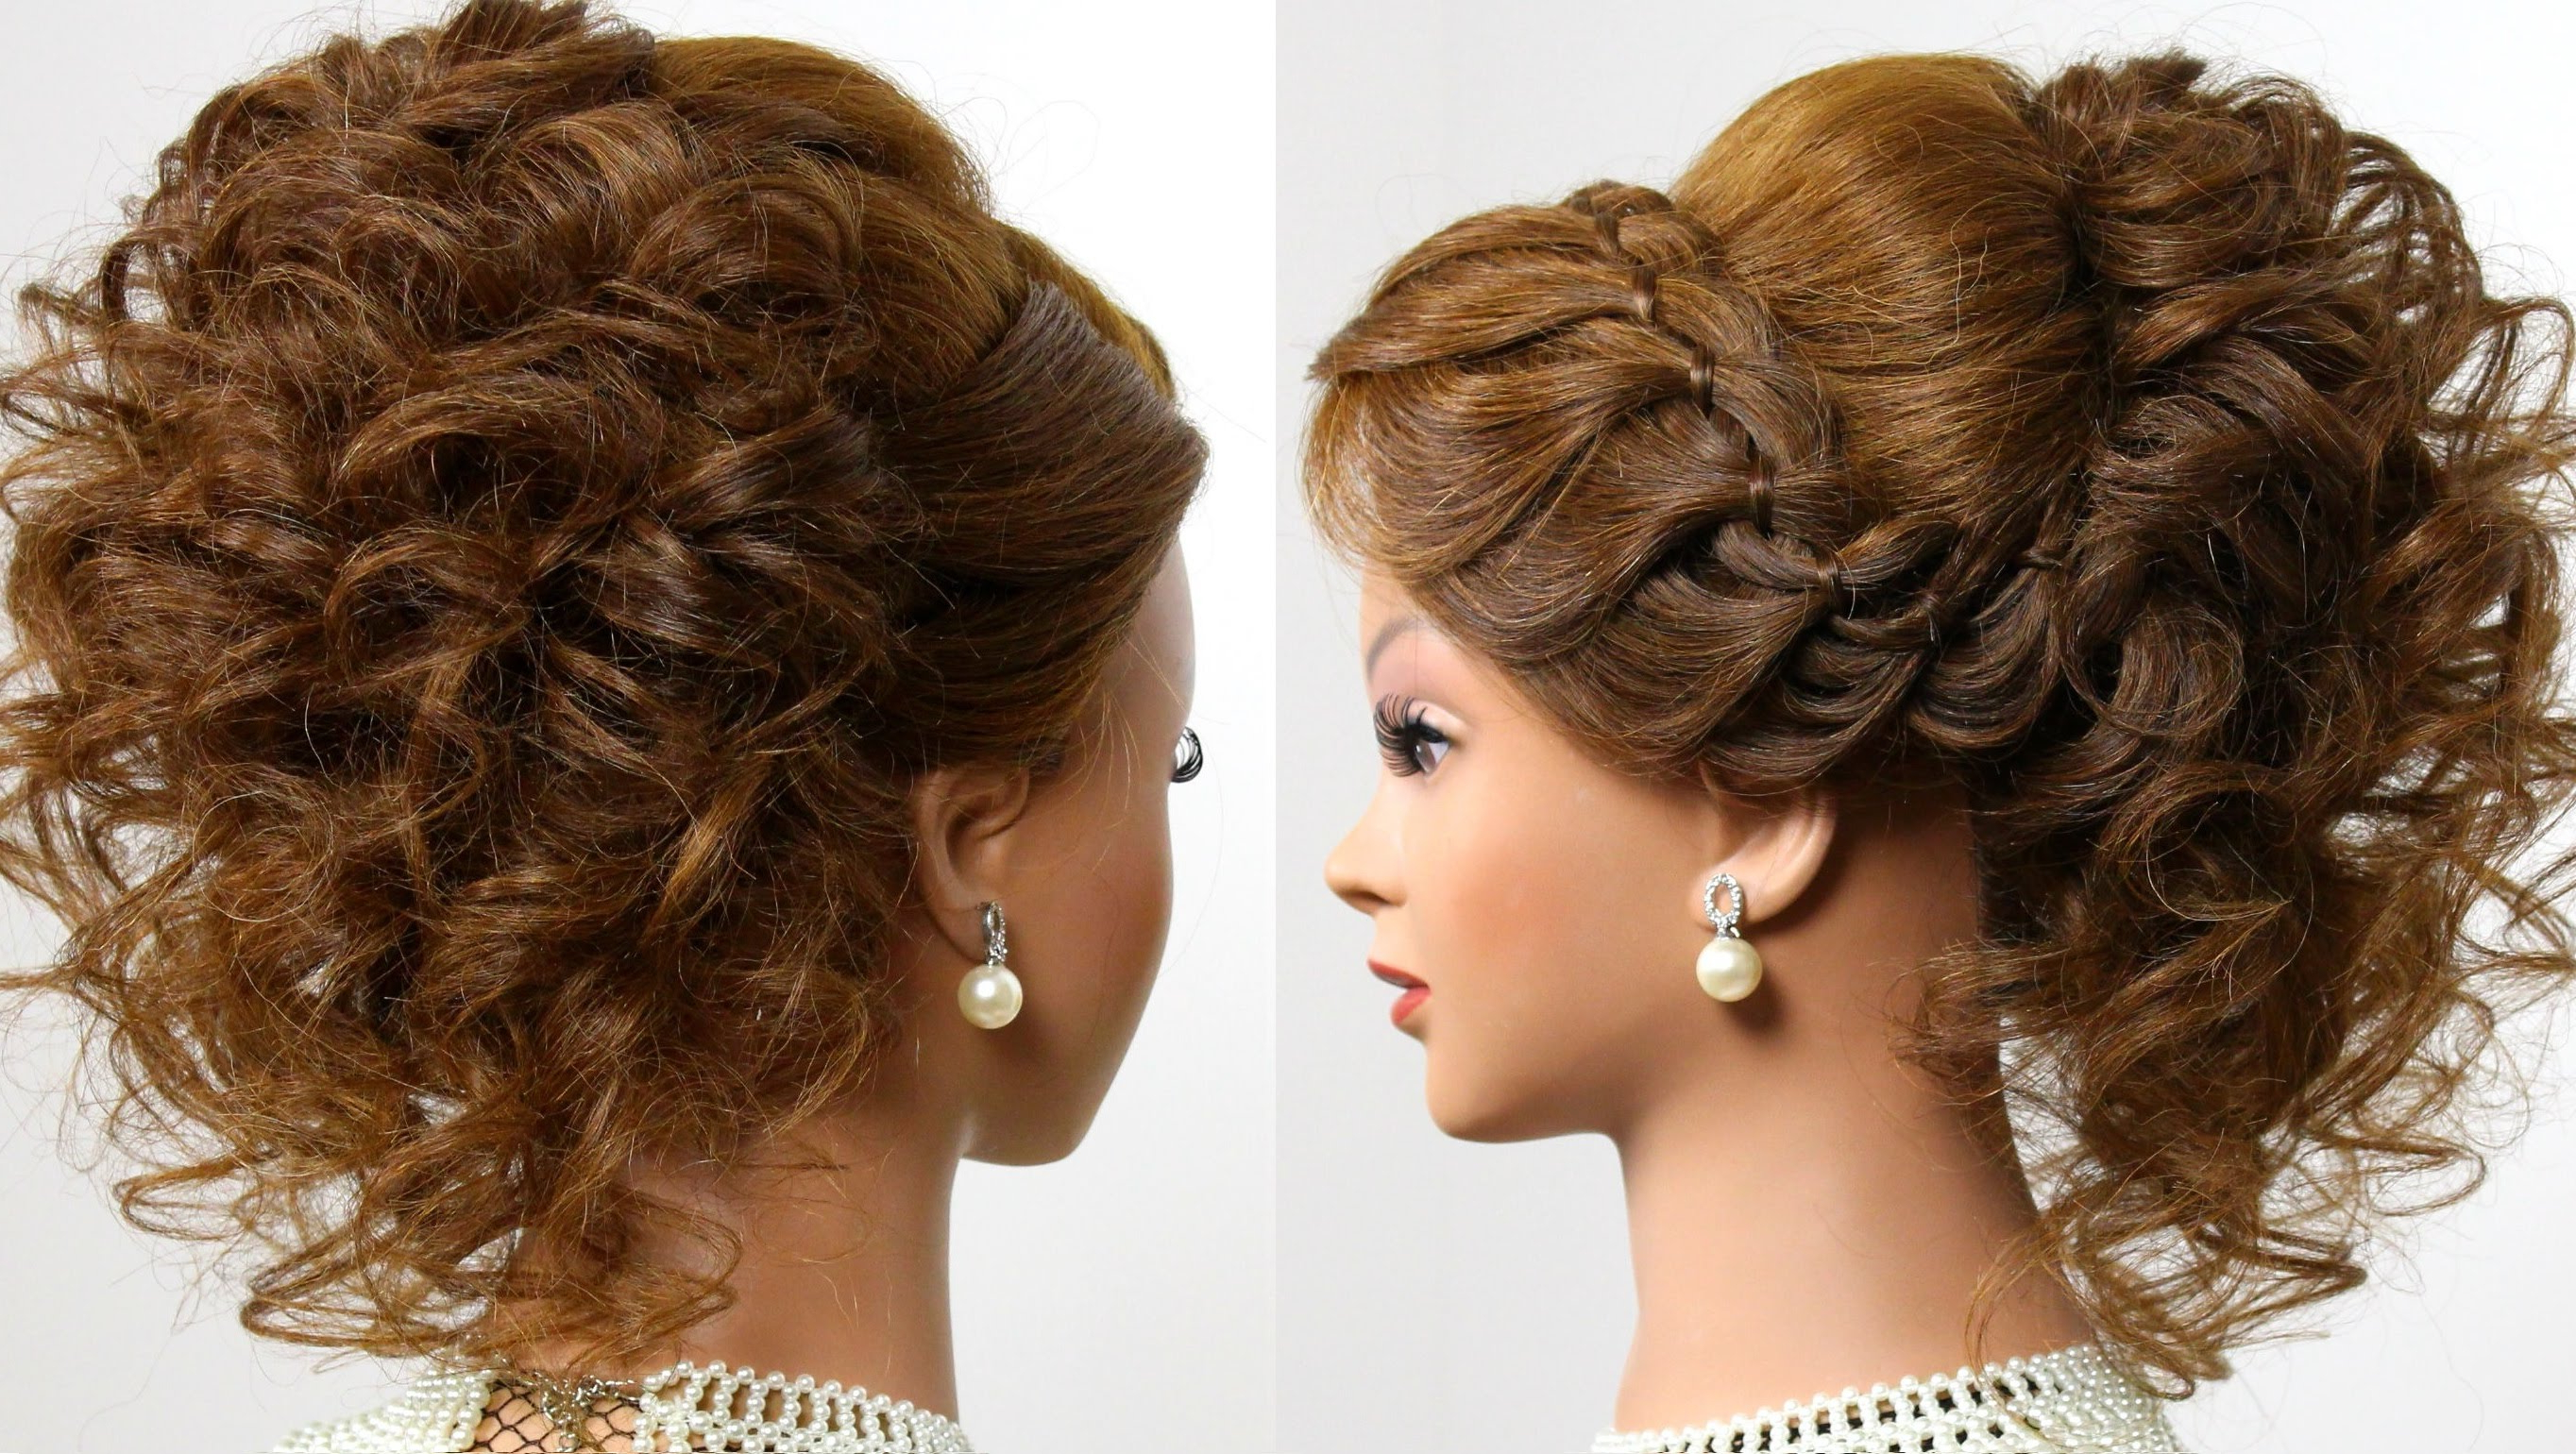 Famous Medium Hairstyles For Weddings For Bridesmaids Within Hairstyles For Long Hair Wedding Bridesmaid – Hairstyle For Women & Man (Gallery 7 of 20)